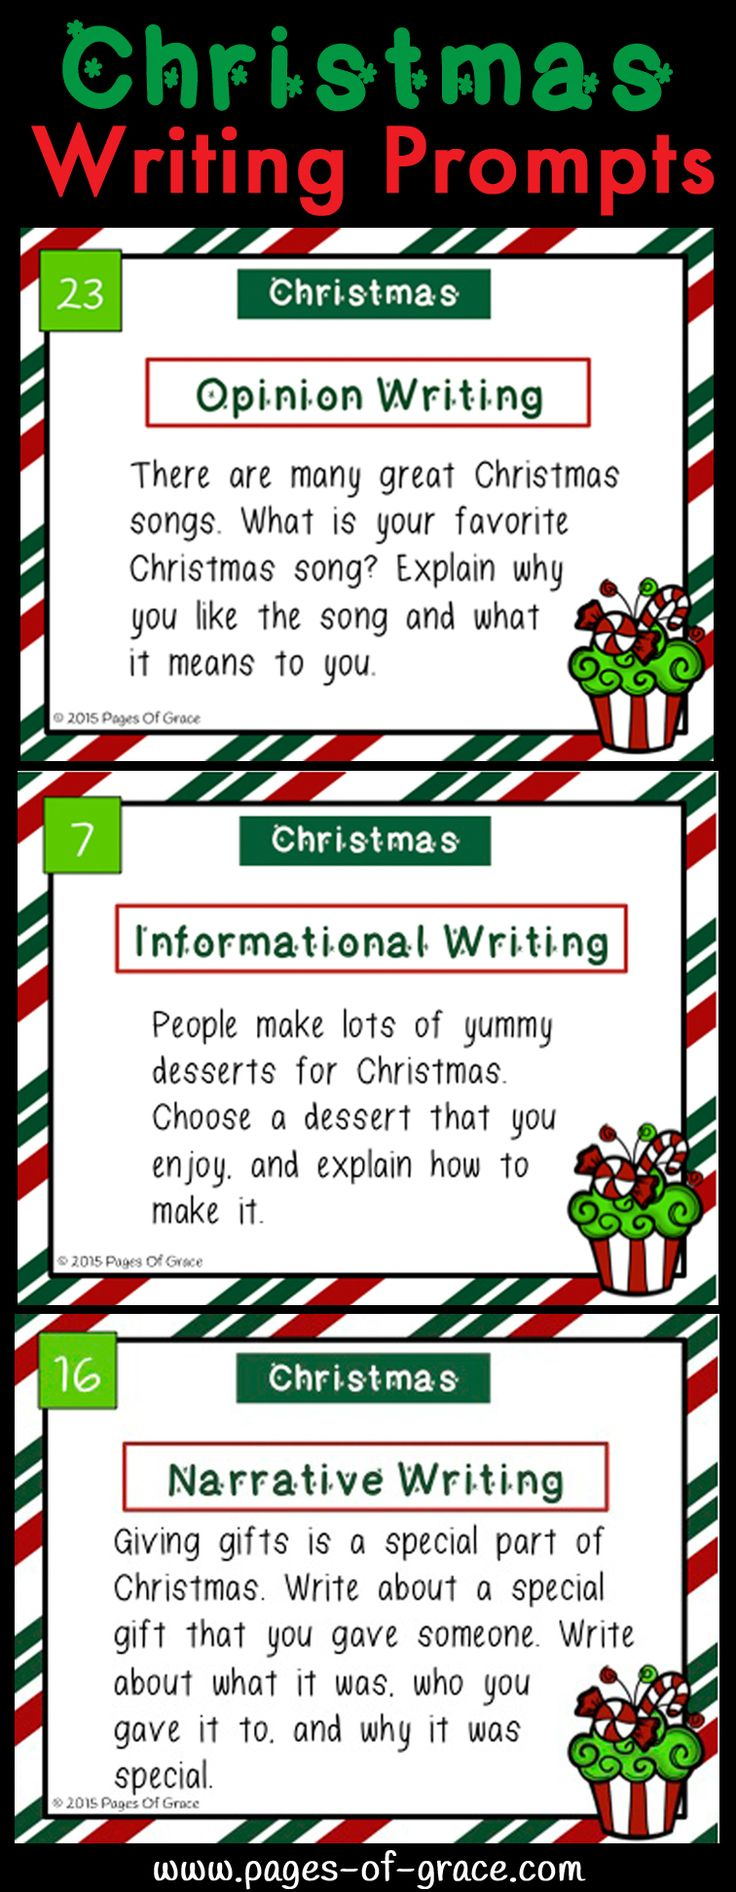 Descriptive Essay On Christmas Holiday  Essay Writing Skills Descriptive Essay On Christmas Holiday